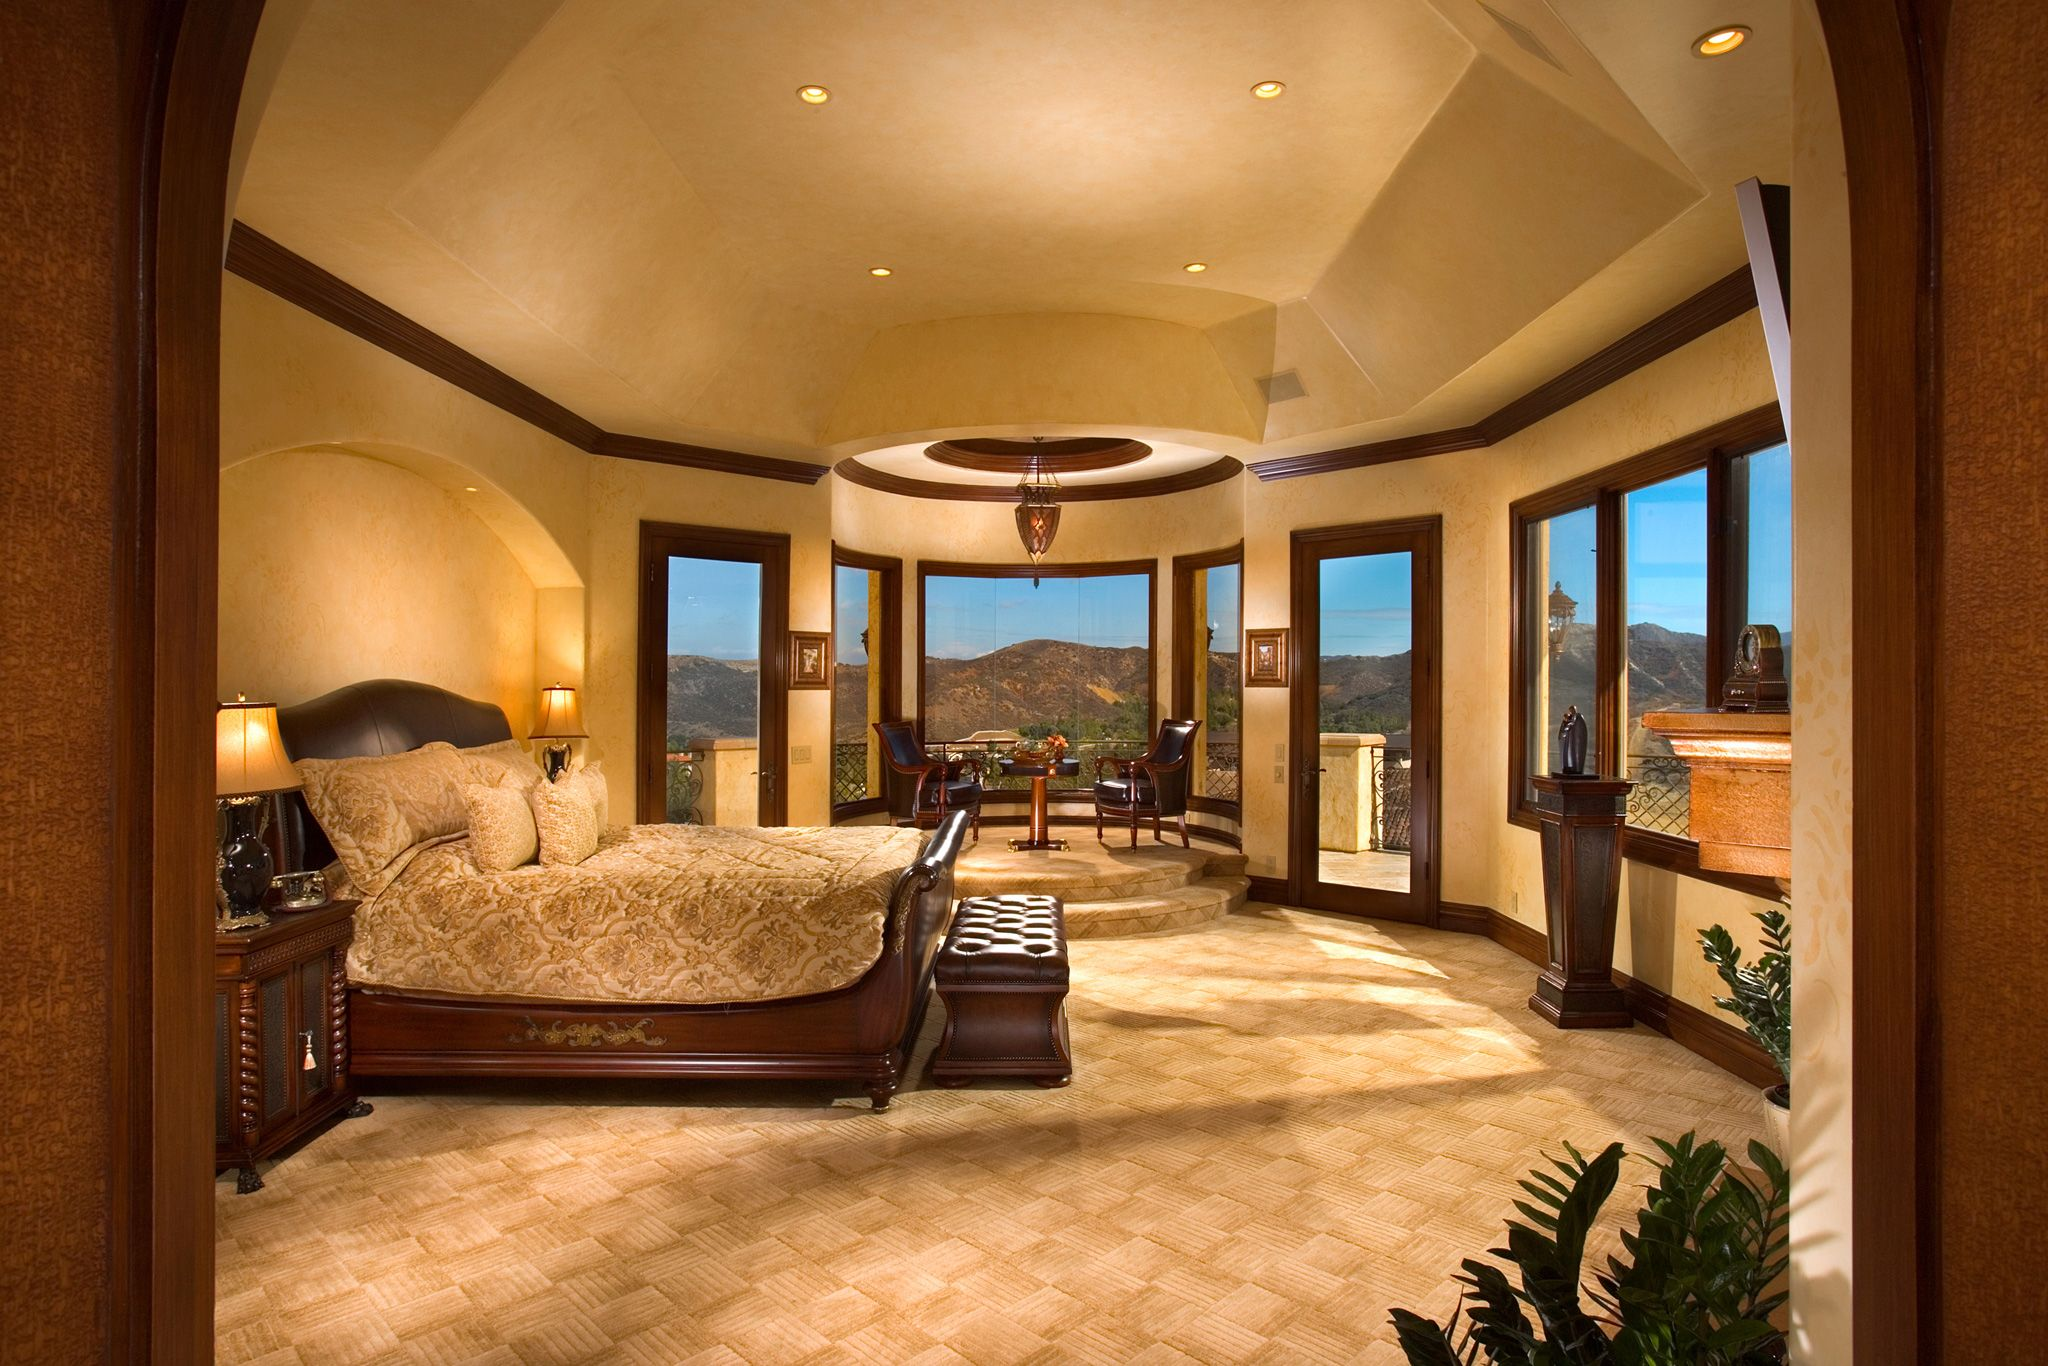 Large Master Bedroom Design 21 Incredible Master Bedrooms Design Ideas Luxury Master Bedroom